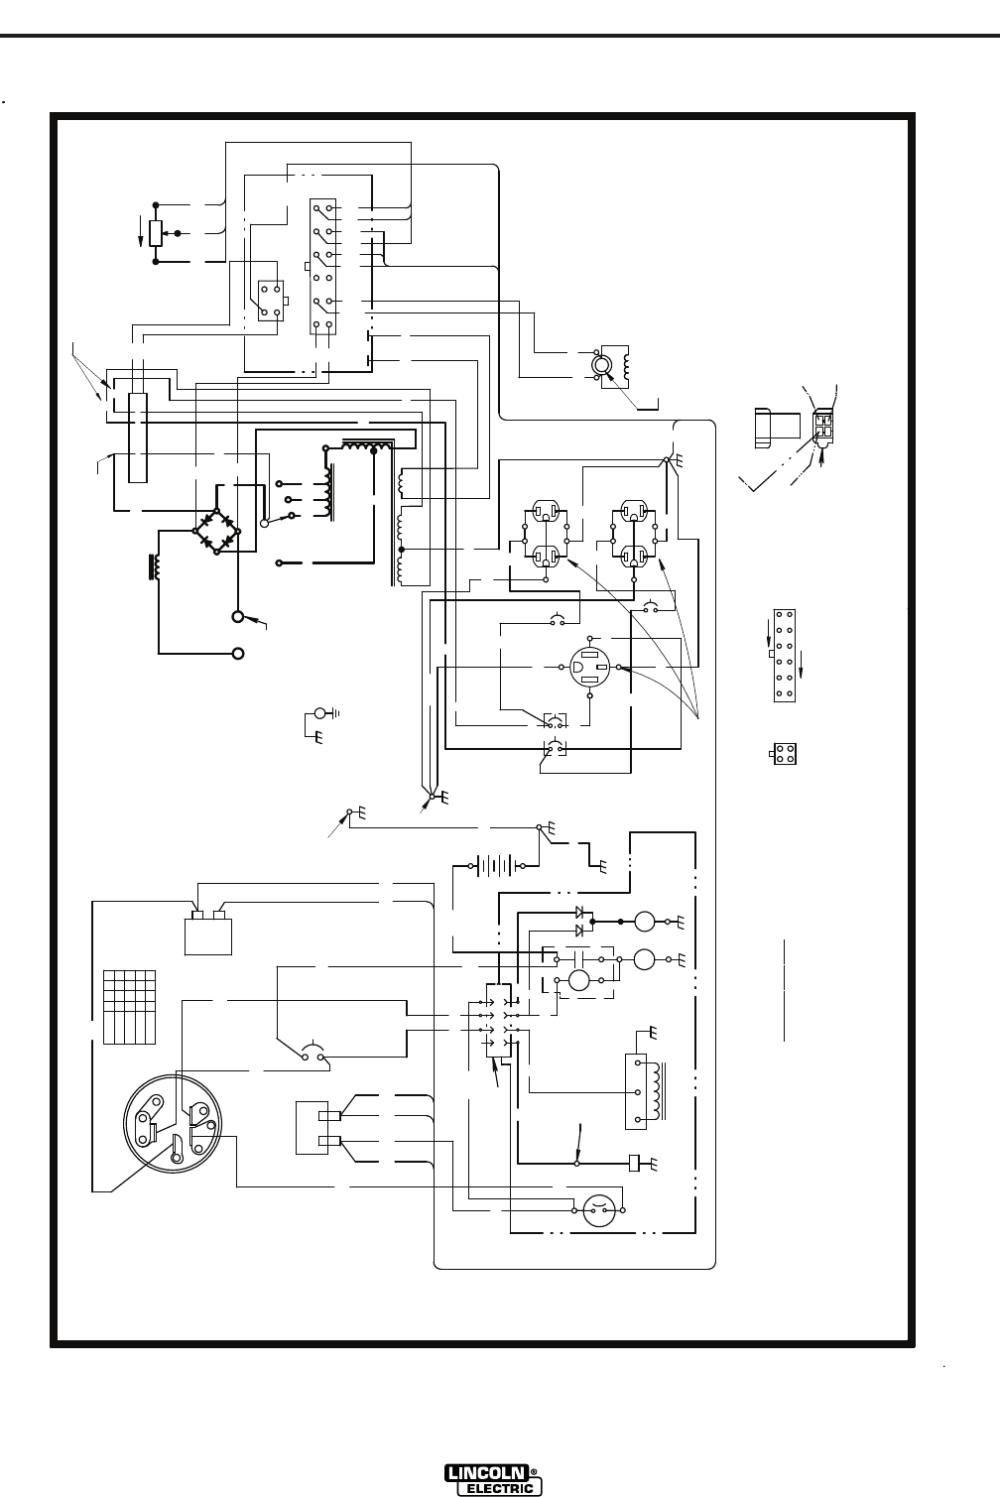 medium resolution of lincoln electric wiring diagram